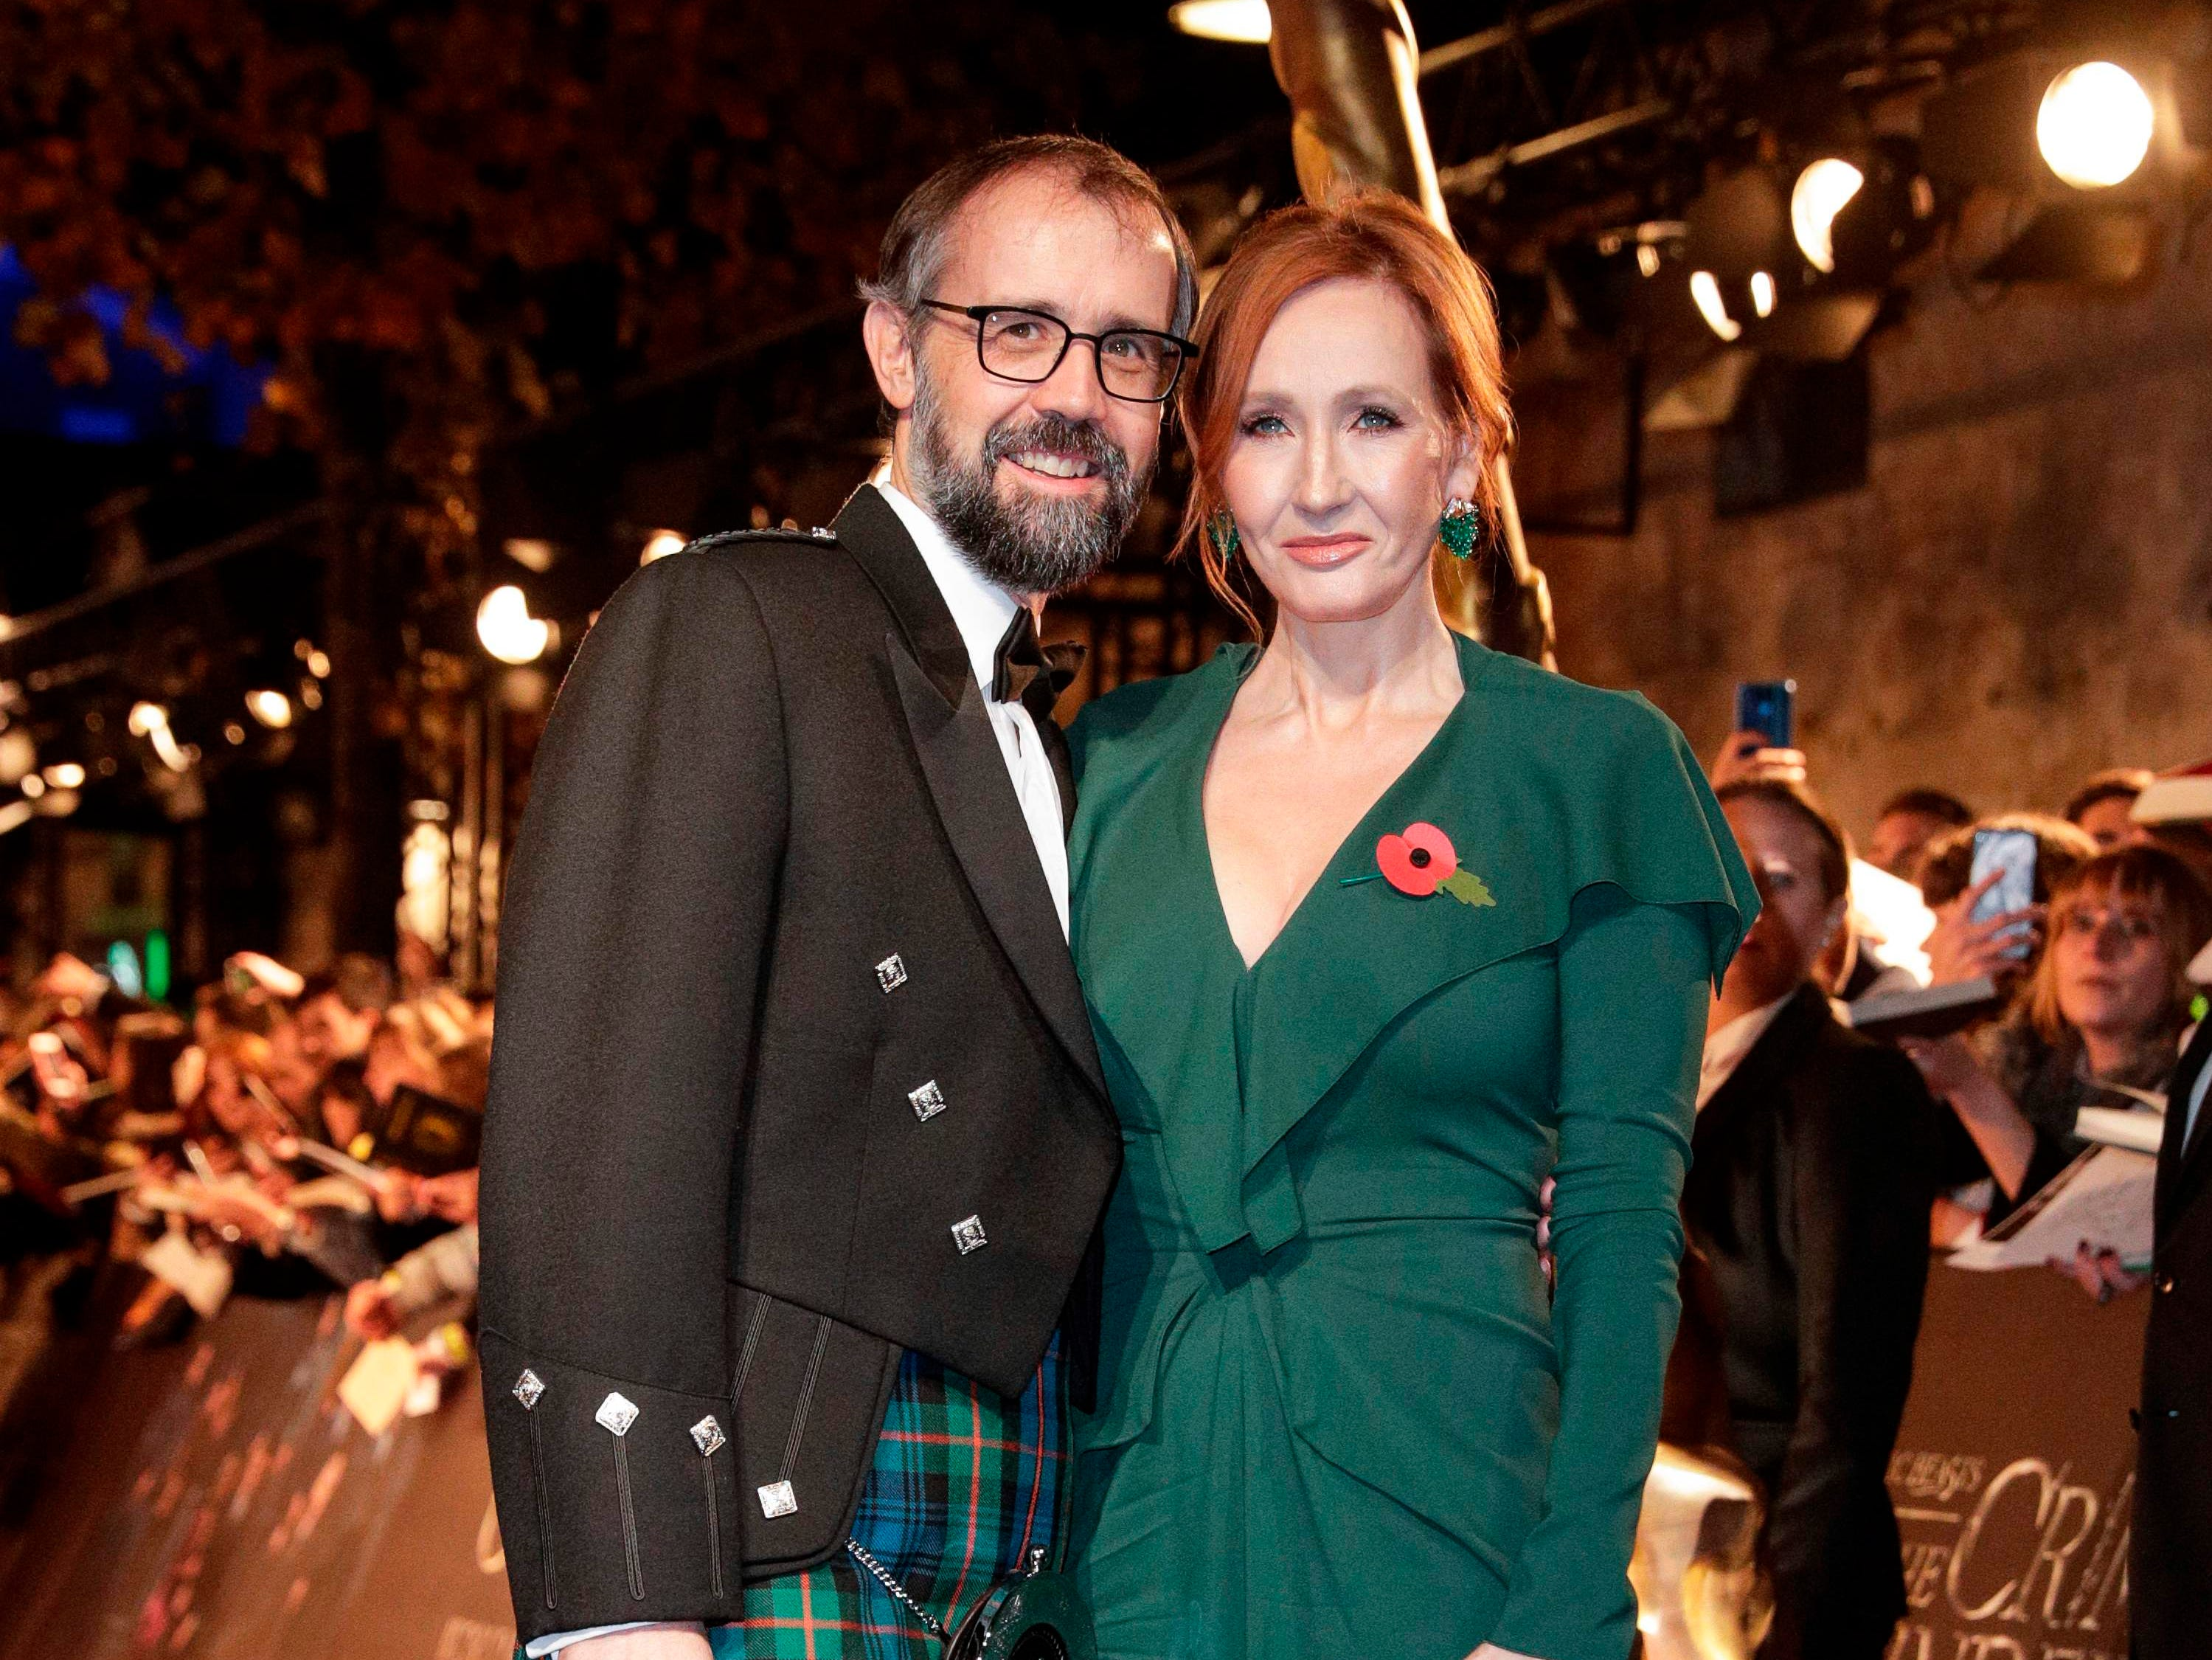 British screenplay writer J. K. Rowling poses with her husband Neil Murray for a photograph as they arrive for the premier of the fantasy film 'Fantastic Beasts: The Crimes of Grindelwald' in Paris on November 8, 2018. (Photo by Geoffroy VAN DER HASSELT / AFP)GEOFFROY VAN DER HASSELT/AFP/Getty Images ORIG FILE ID: AFP_1AO8RM